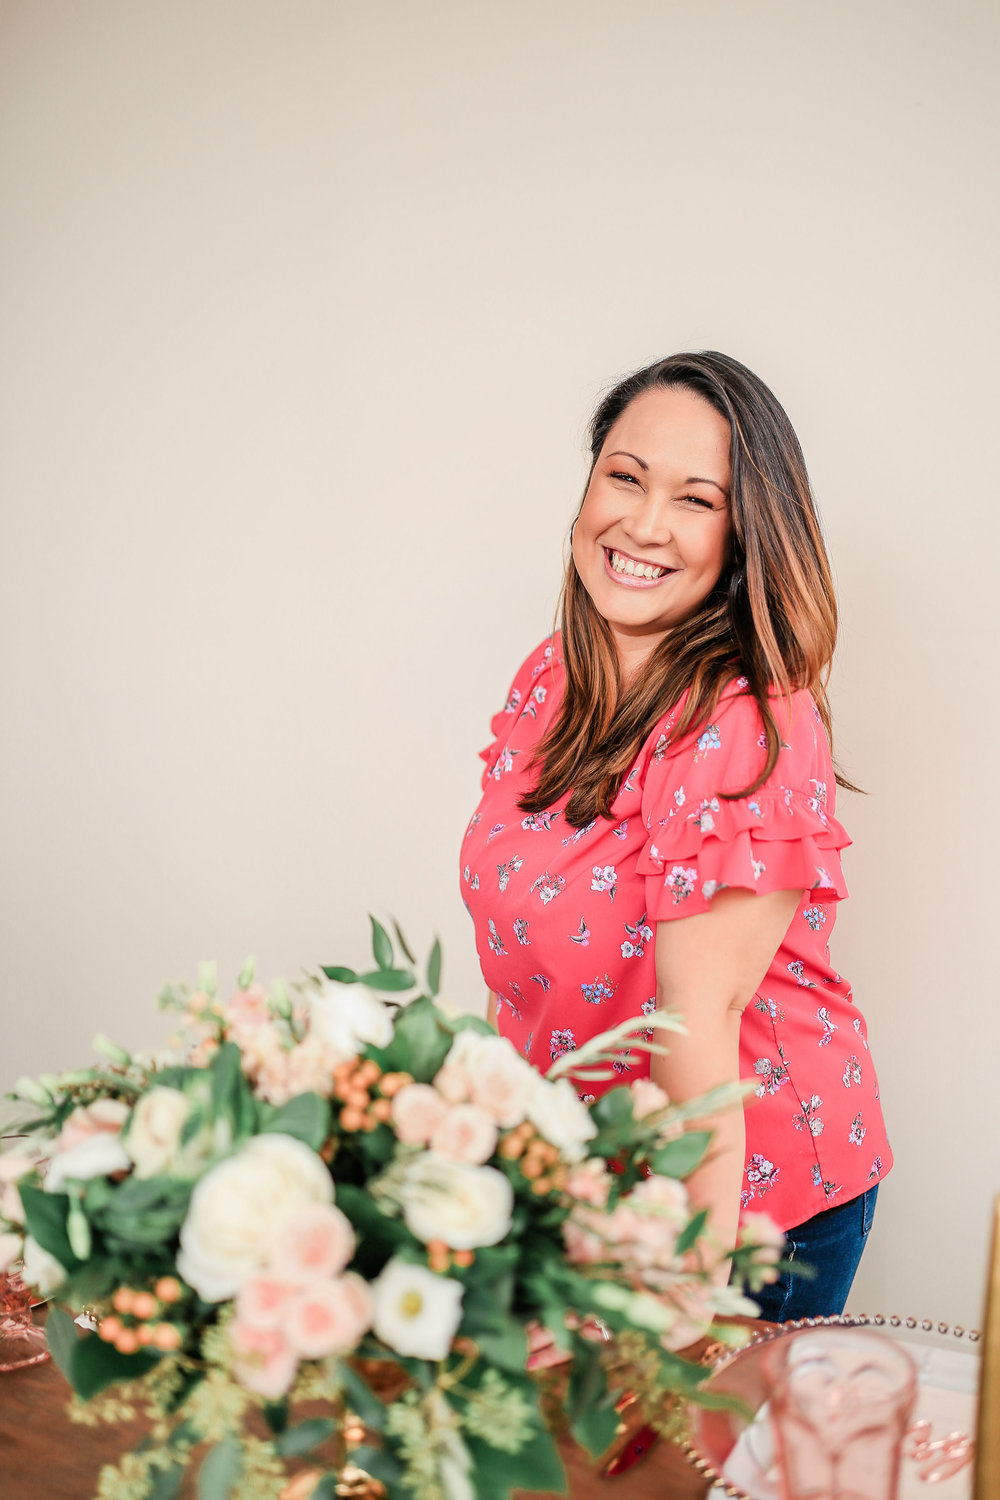 Hello, Lovely! - I'm Karen. I enjoy creating all the pretty things for wedding days as well as building fantastic relationships with my beautiful couples. Enjoying the wedding planning journey is important and I am here to make that possible! I can't wait to meet you!